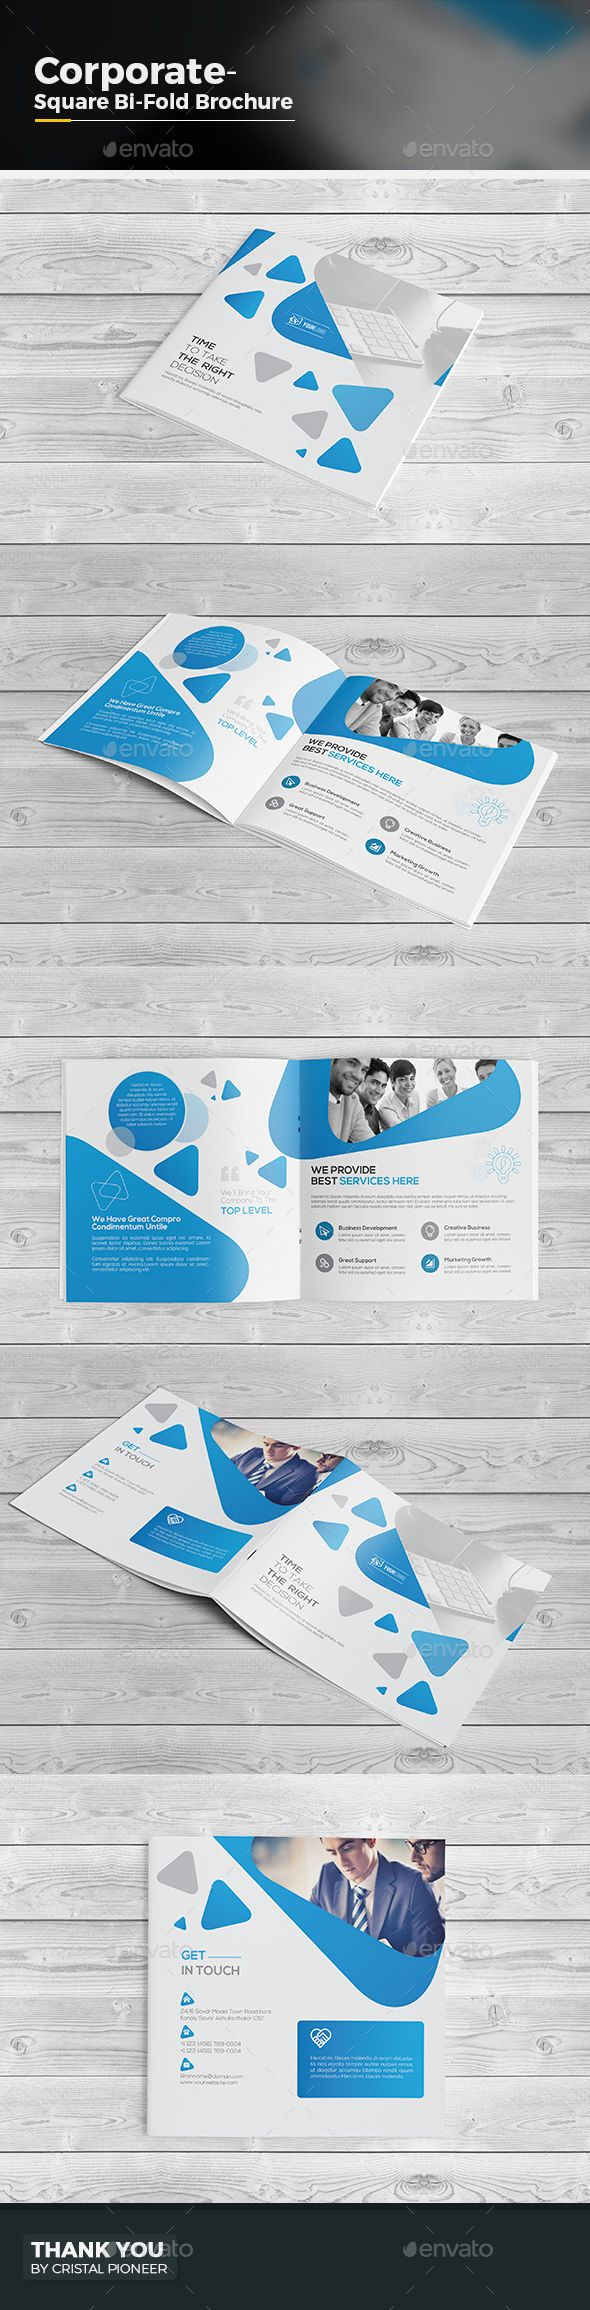 1000 images about brochure templates on pinterest for Bi fold brochure template illustrator